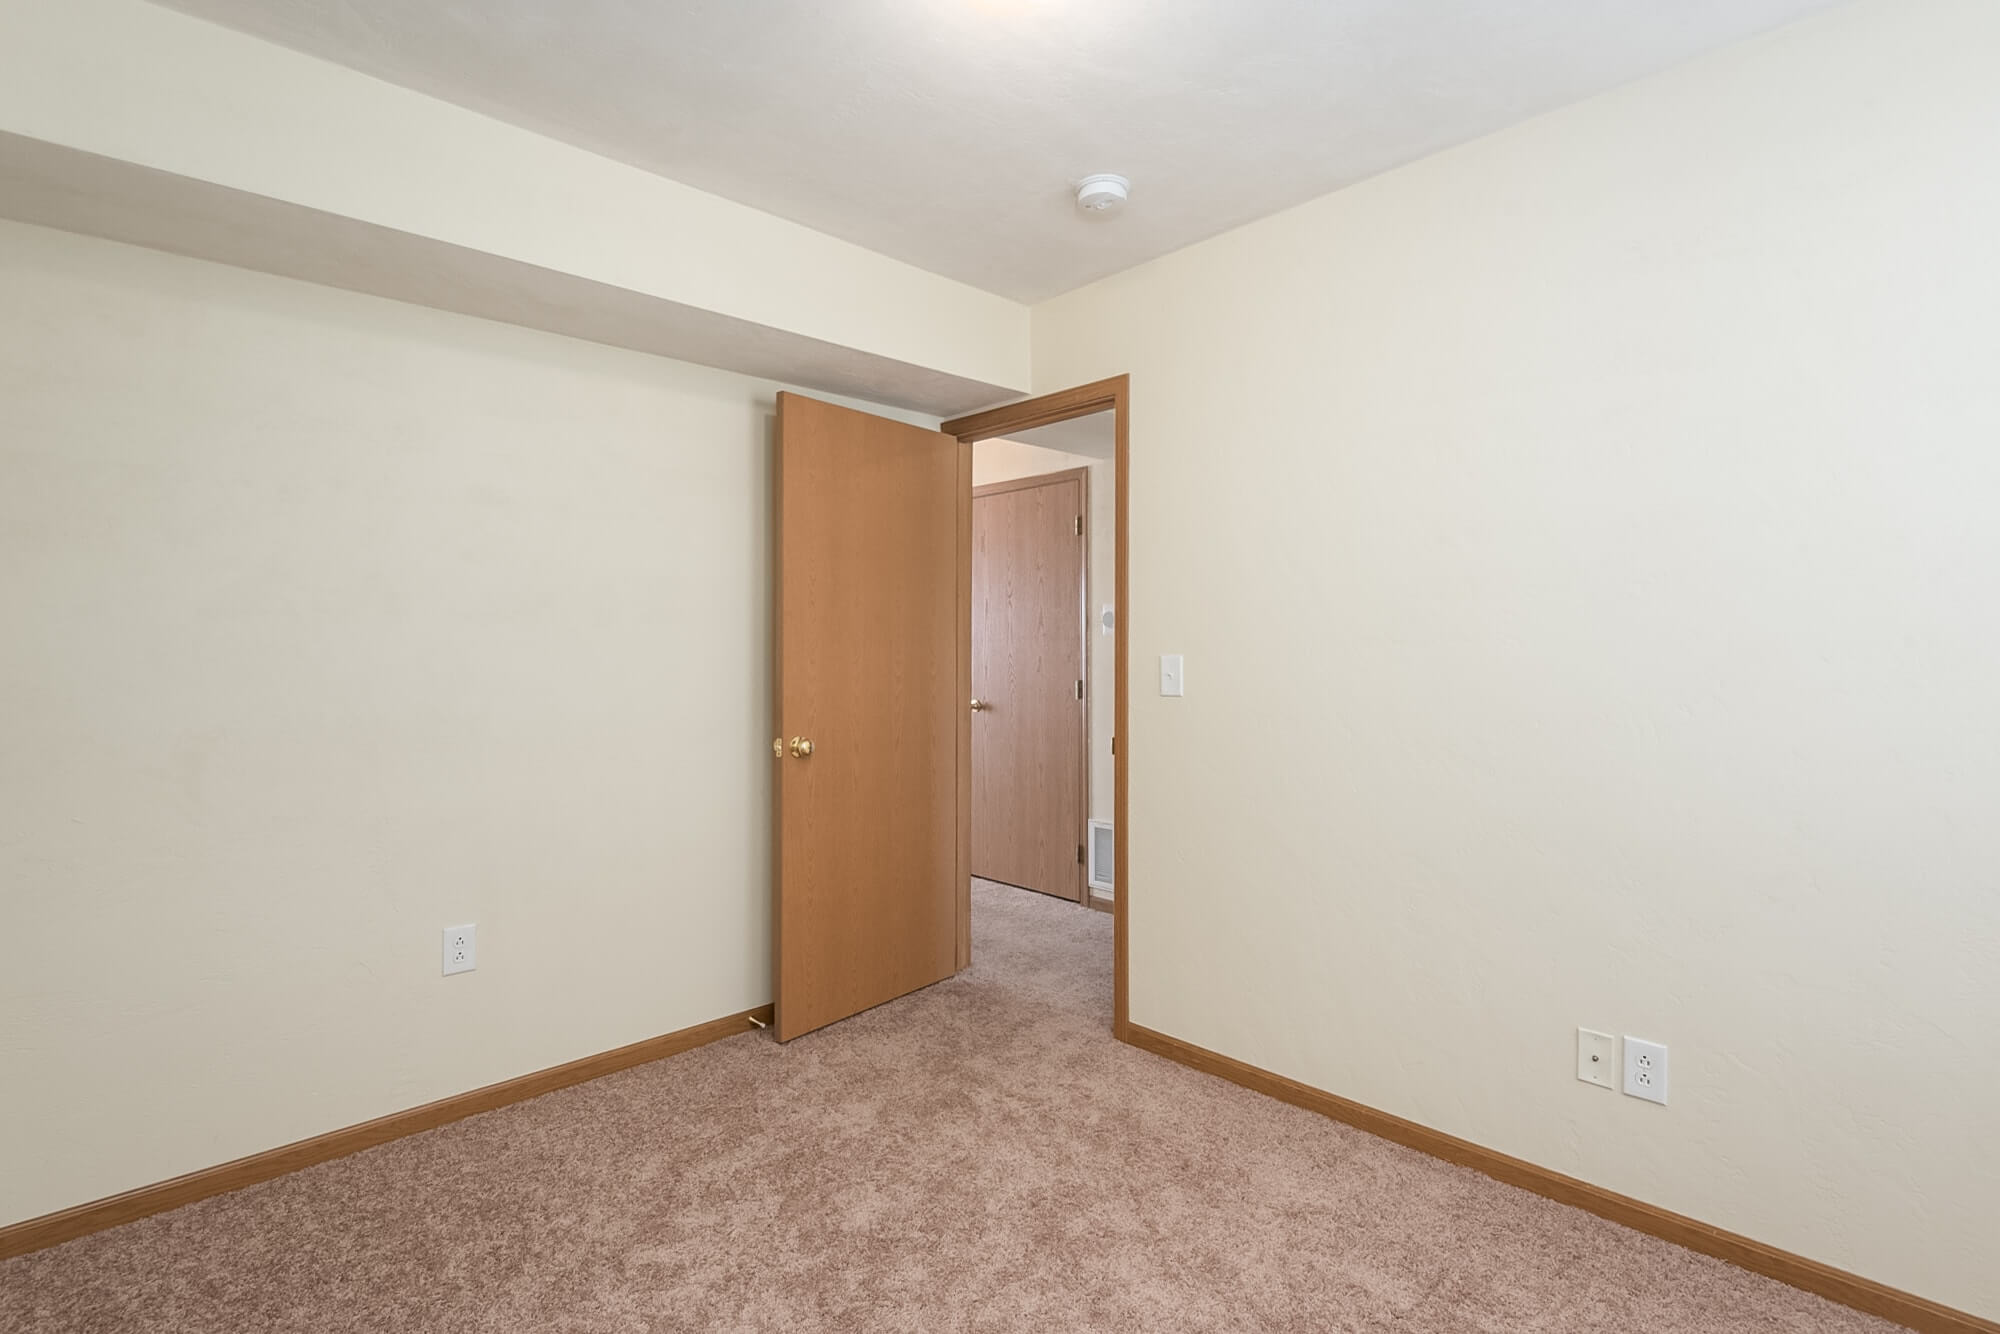 Three Bedroom Apartment In Lebanon, Illinois